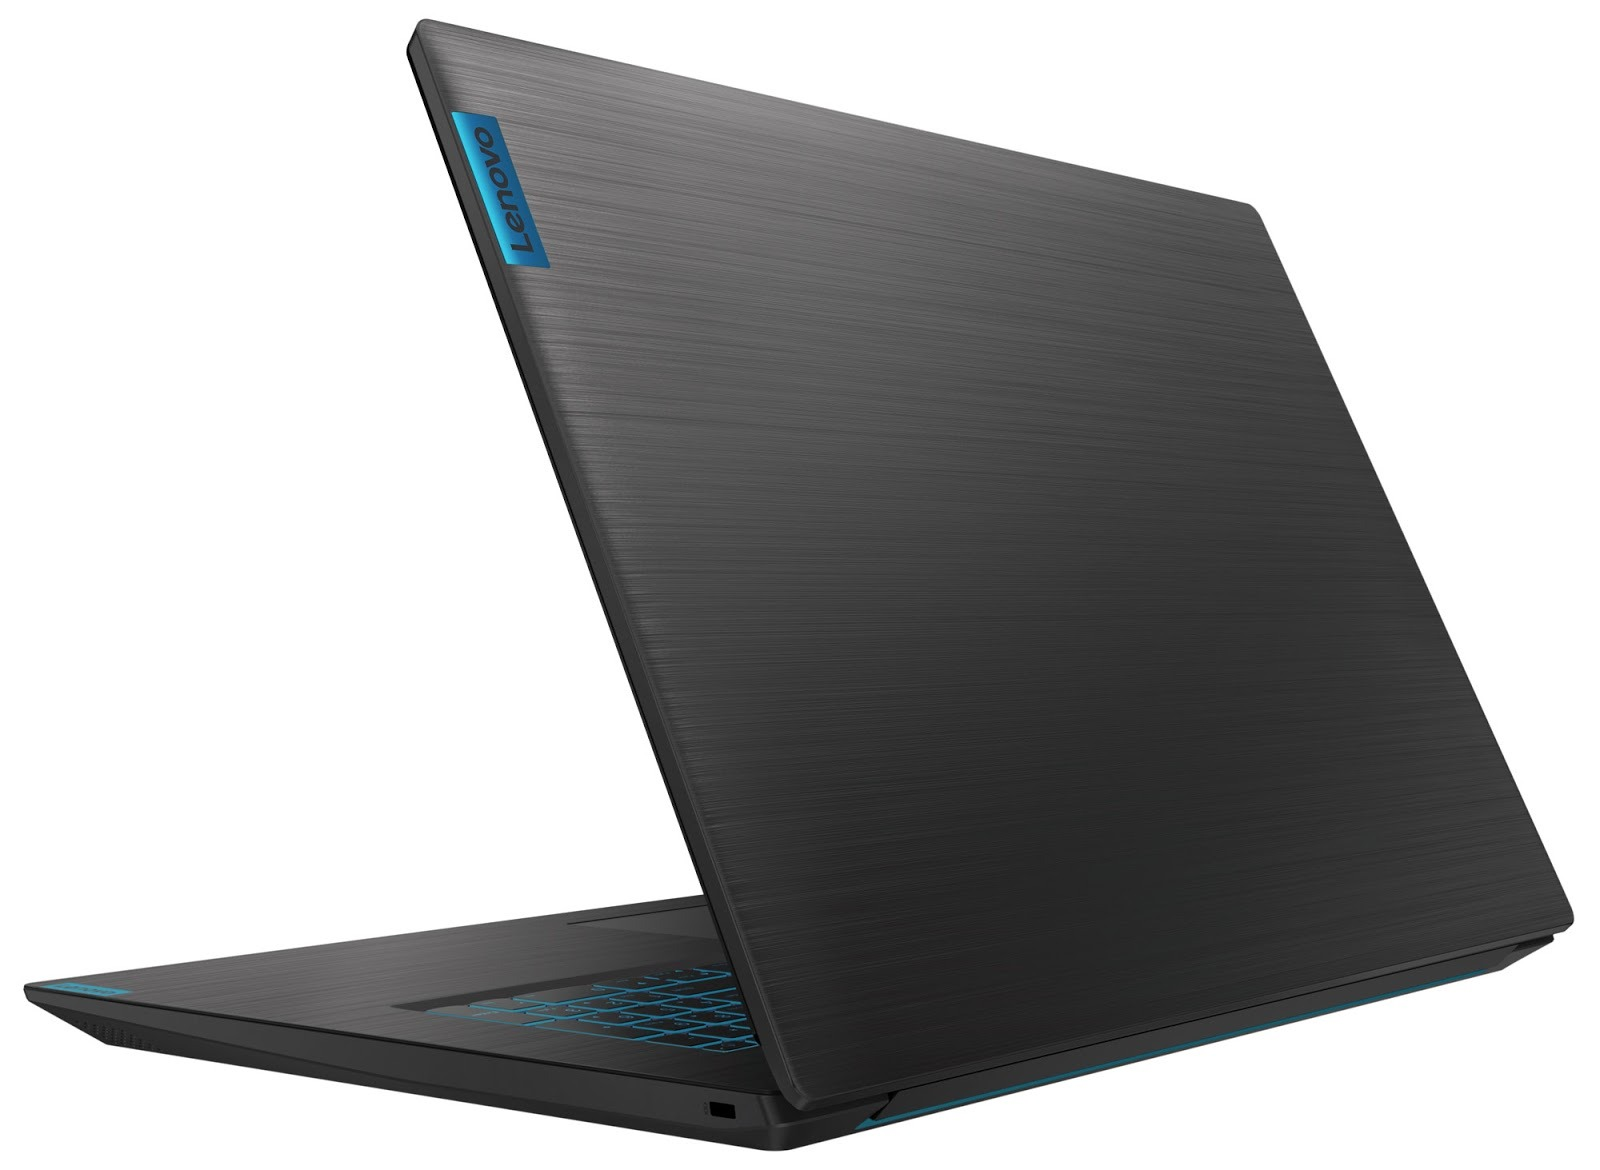 Фото 4. Ноутбук Lenovo ideapad L340-17IRH Gaming (81LL00F9RE)